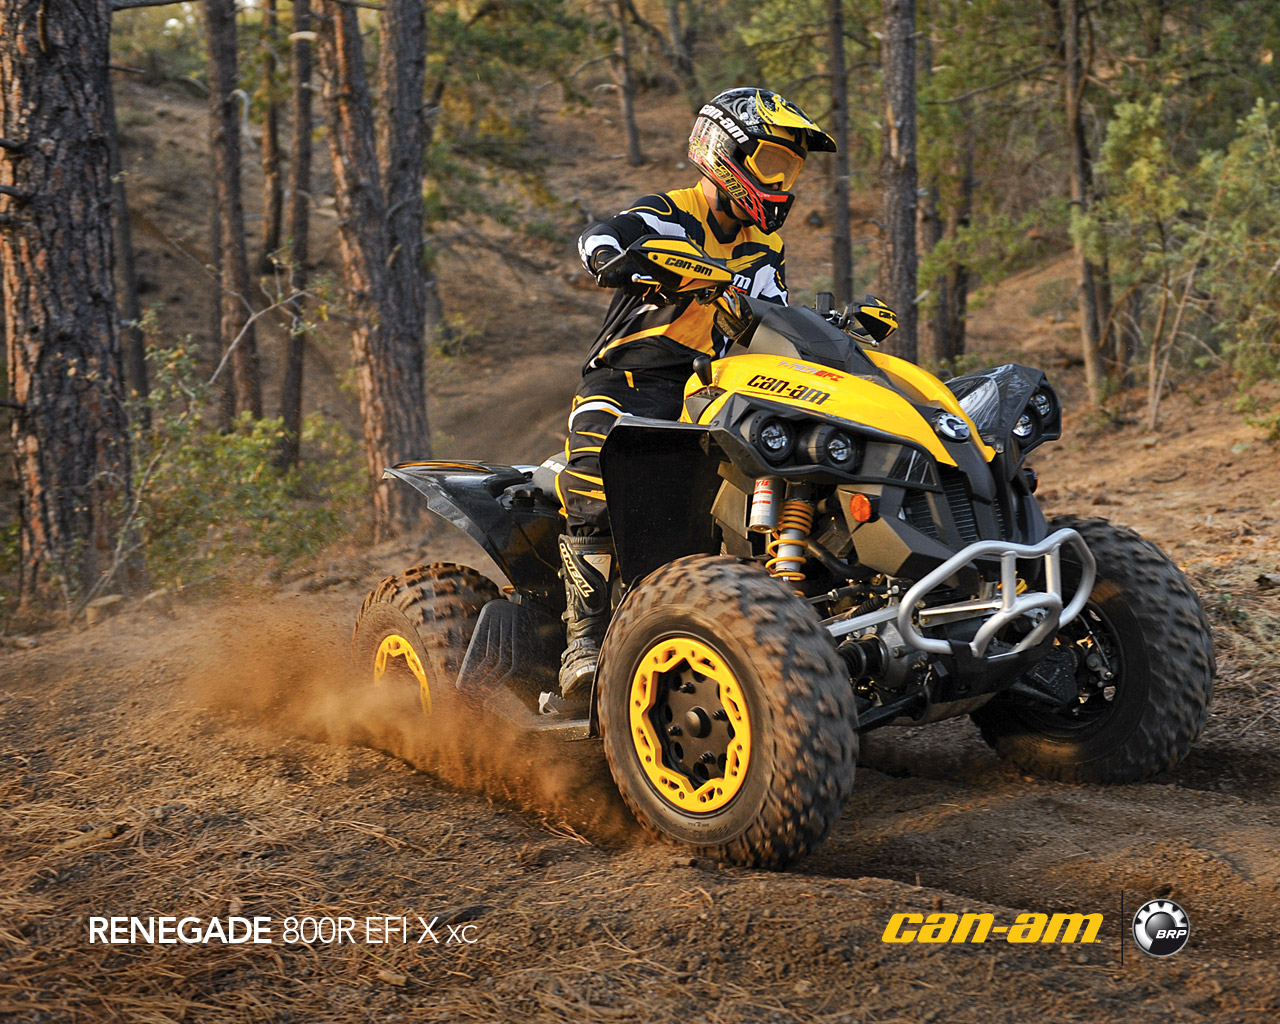 CAN-AM BOMBARDIER Renegade 800 R X xc 2011 photo 4